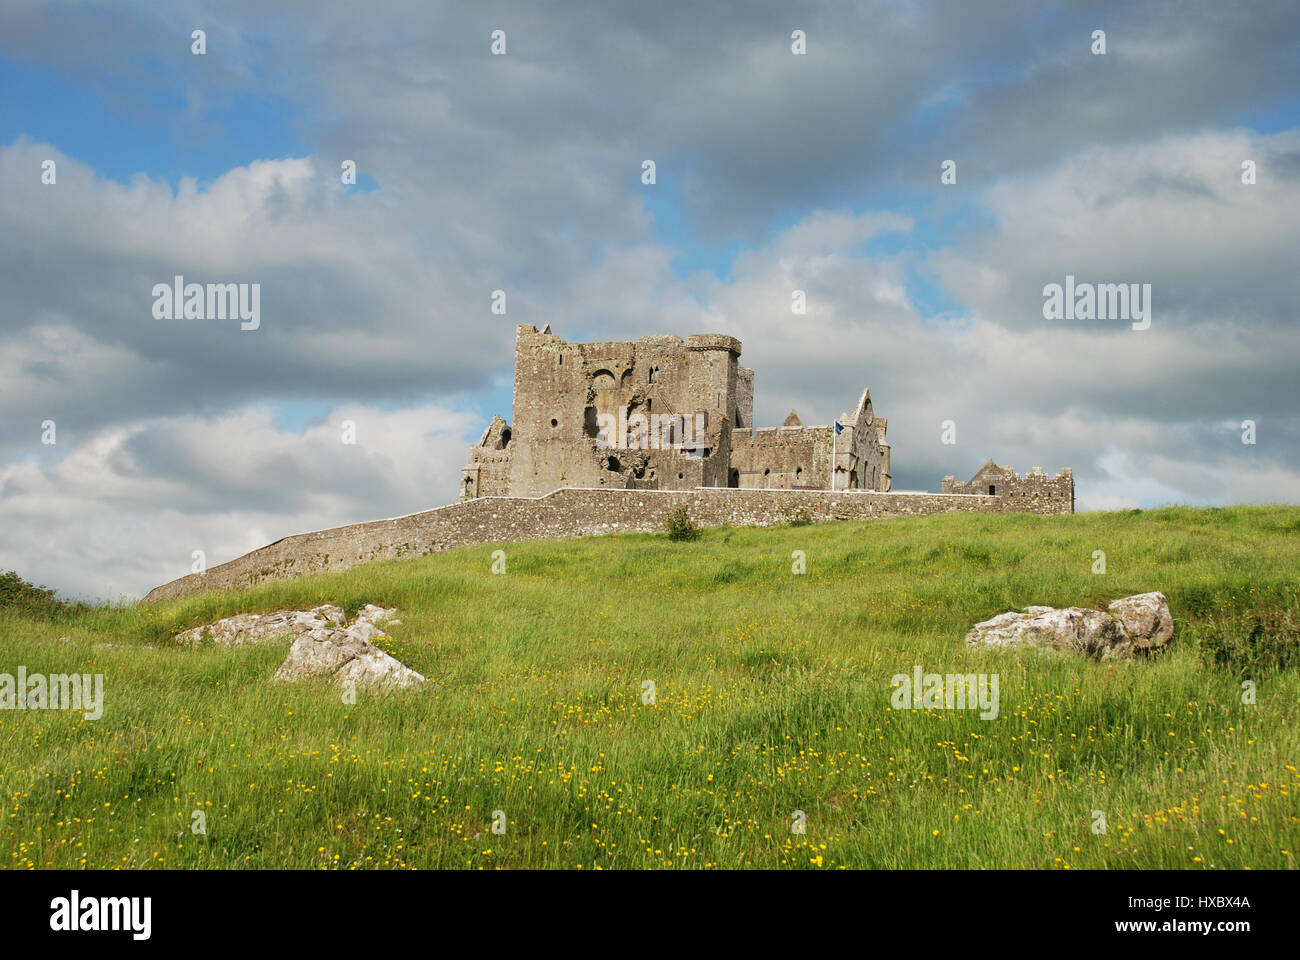 Rock of Cashel in the distance with dandelion filled grass in the foreground and fluffy clouds against a blue sky. - Stock Image